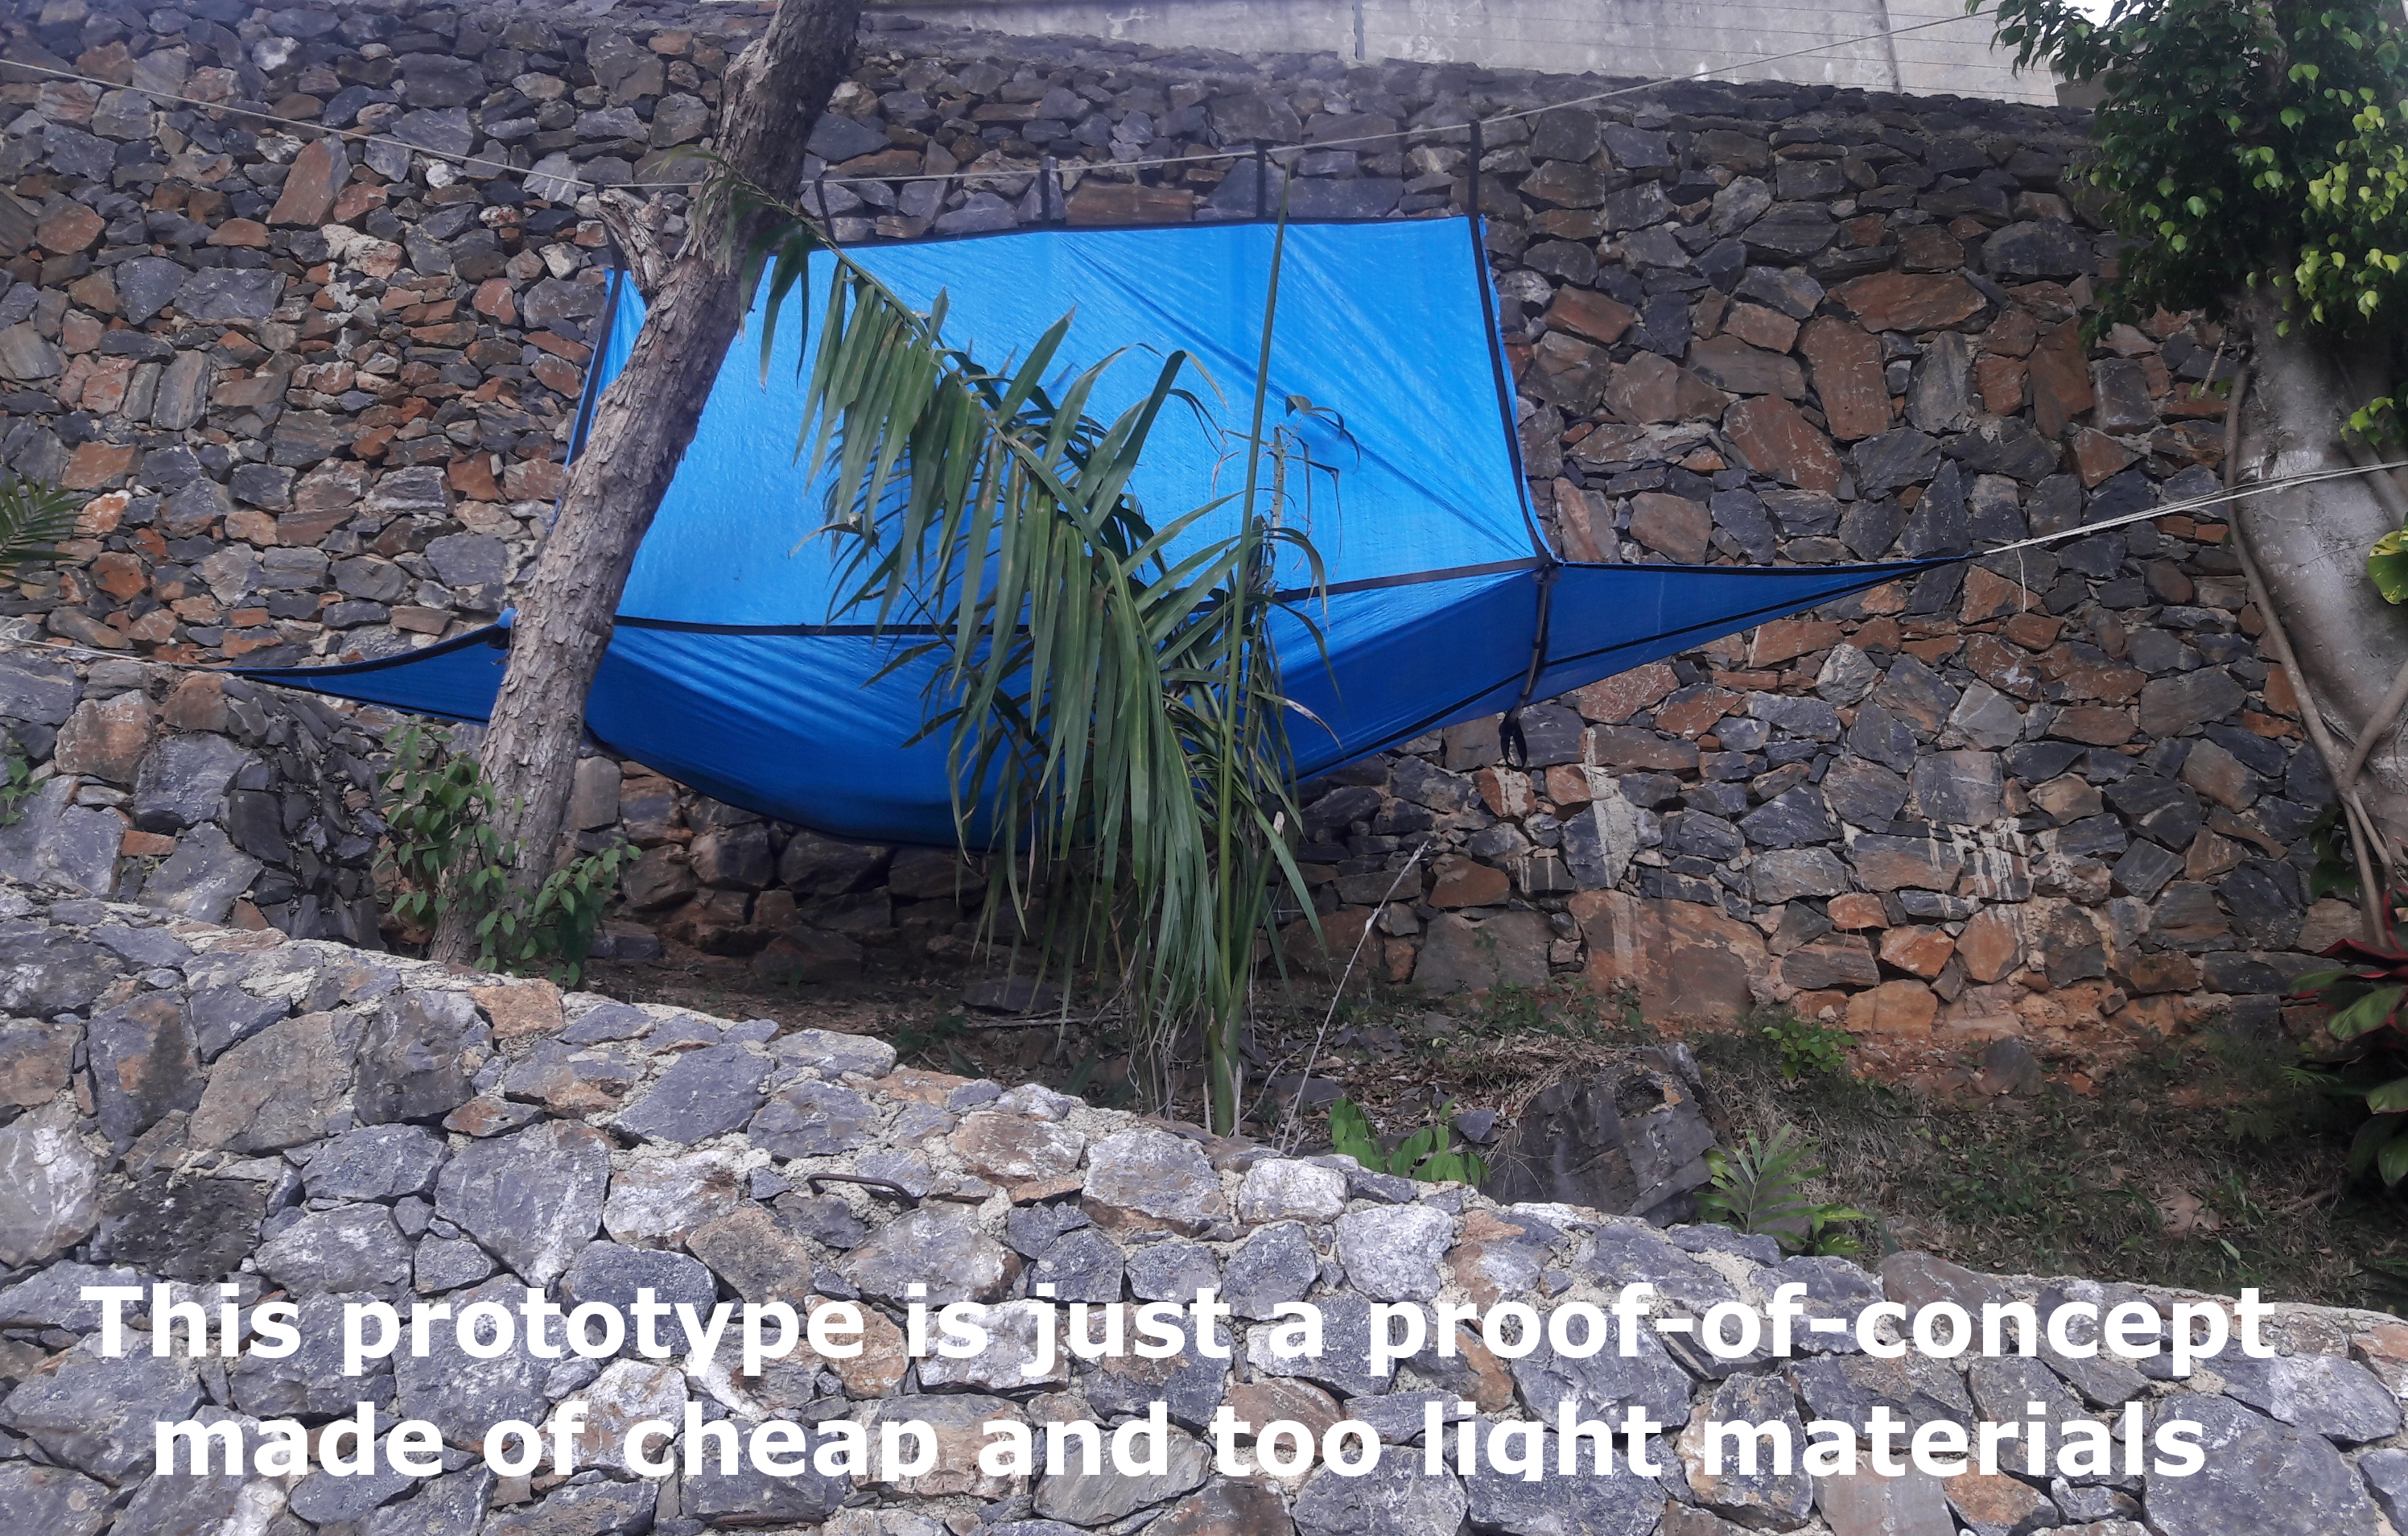 2-tree tent invention-20190505_120217.jpg